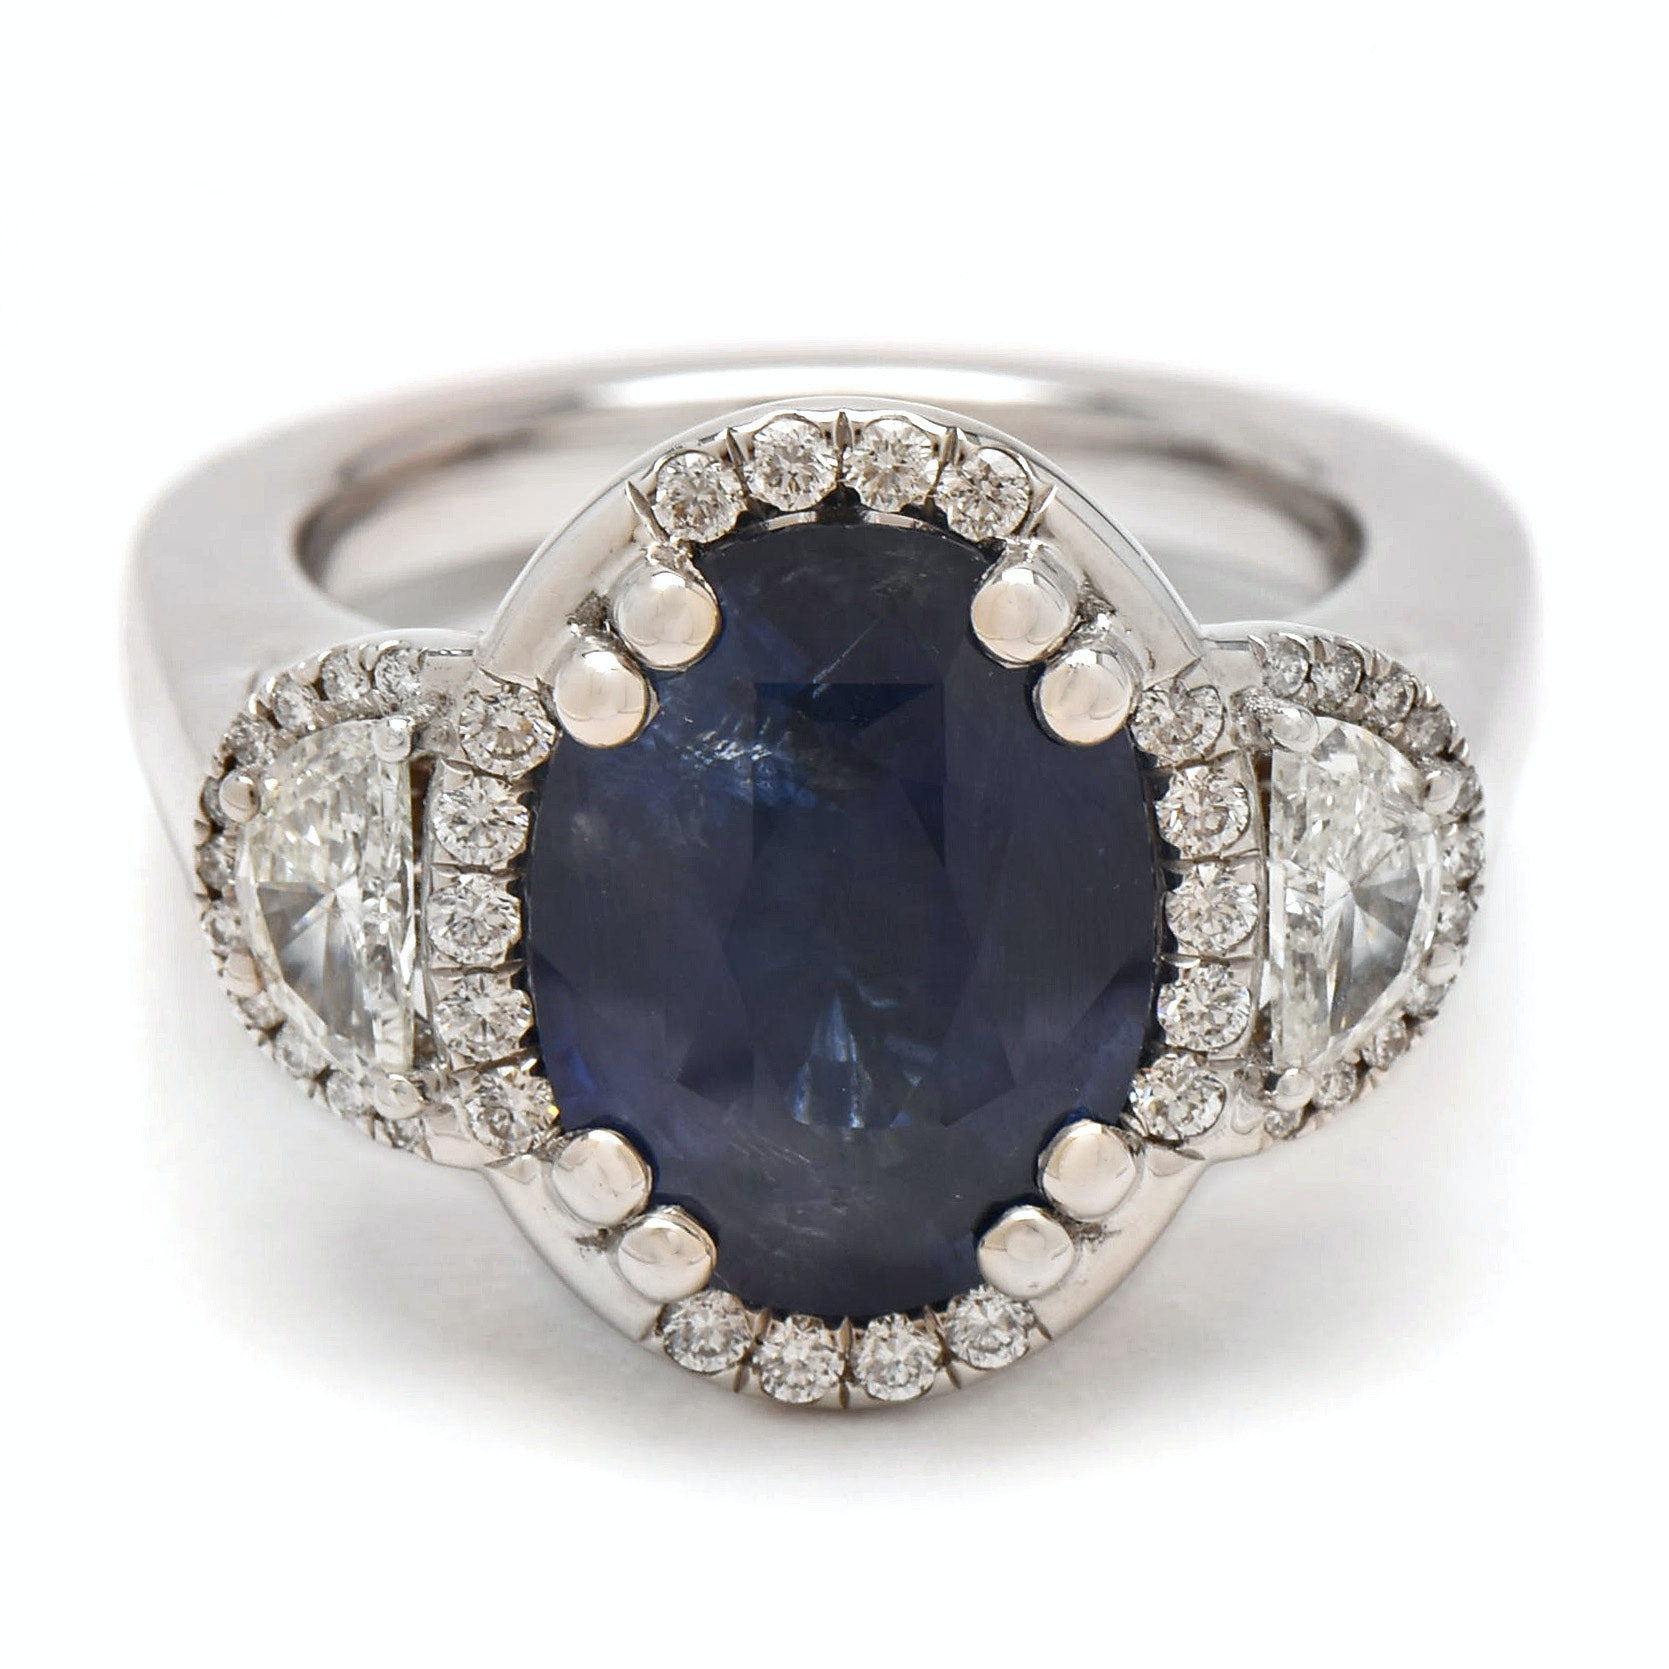 18K White Gold 6.45 CT Sapphire and 1.47 CTW Diamond Ring with AGL Report